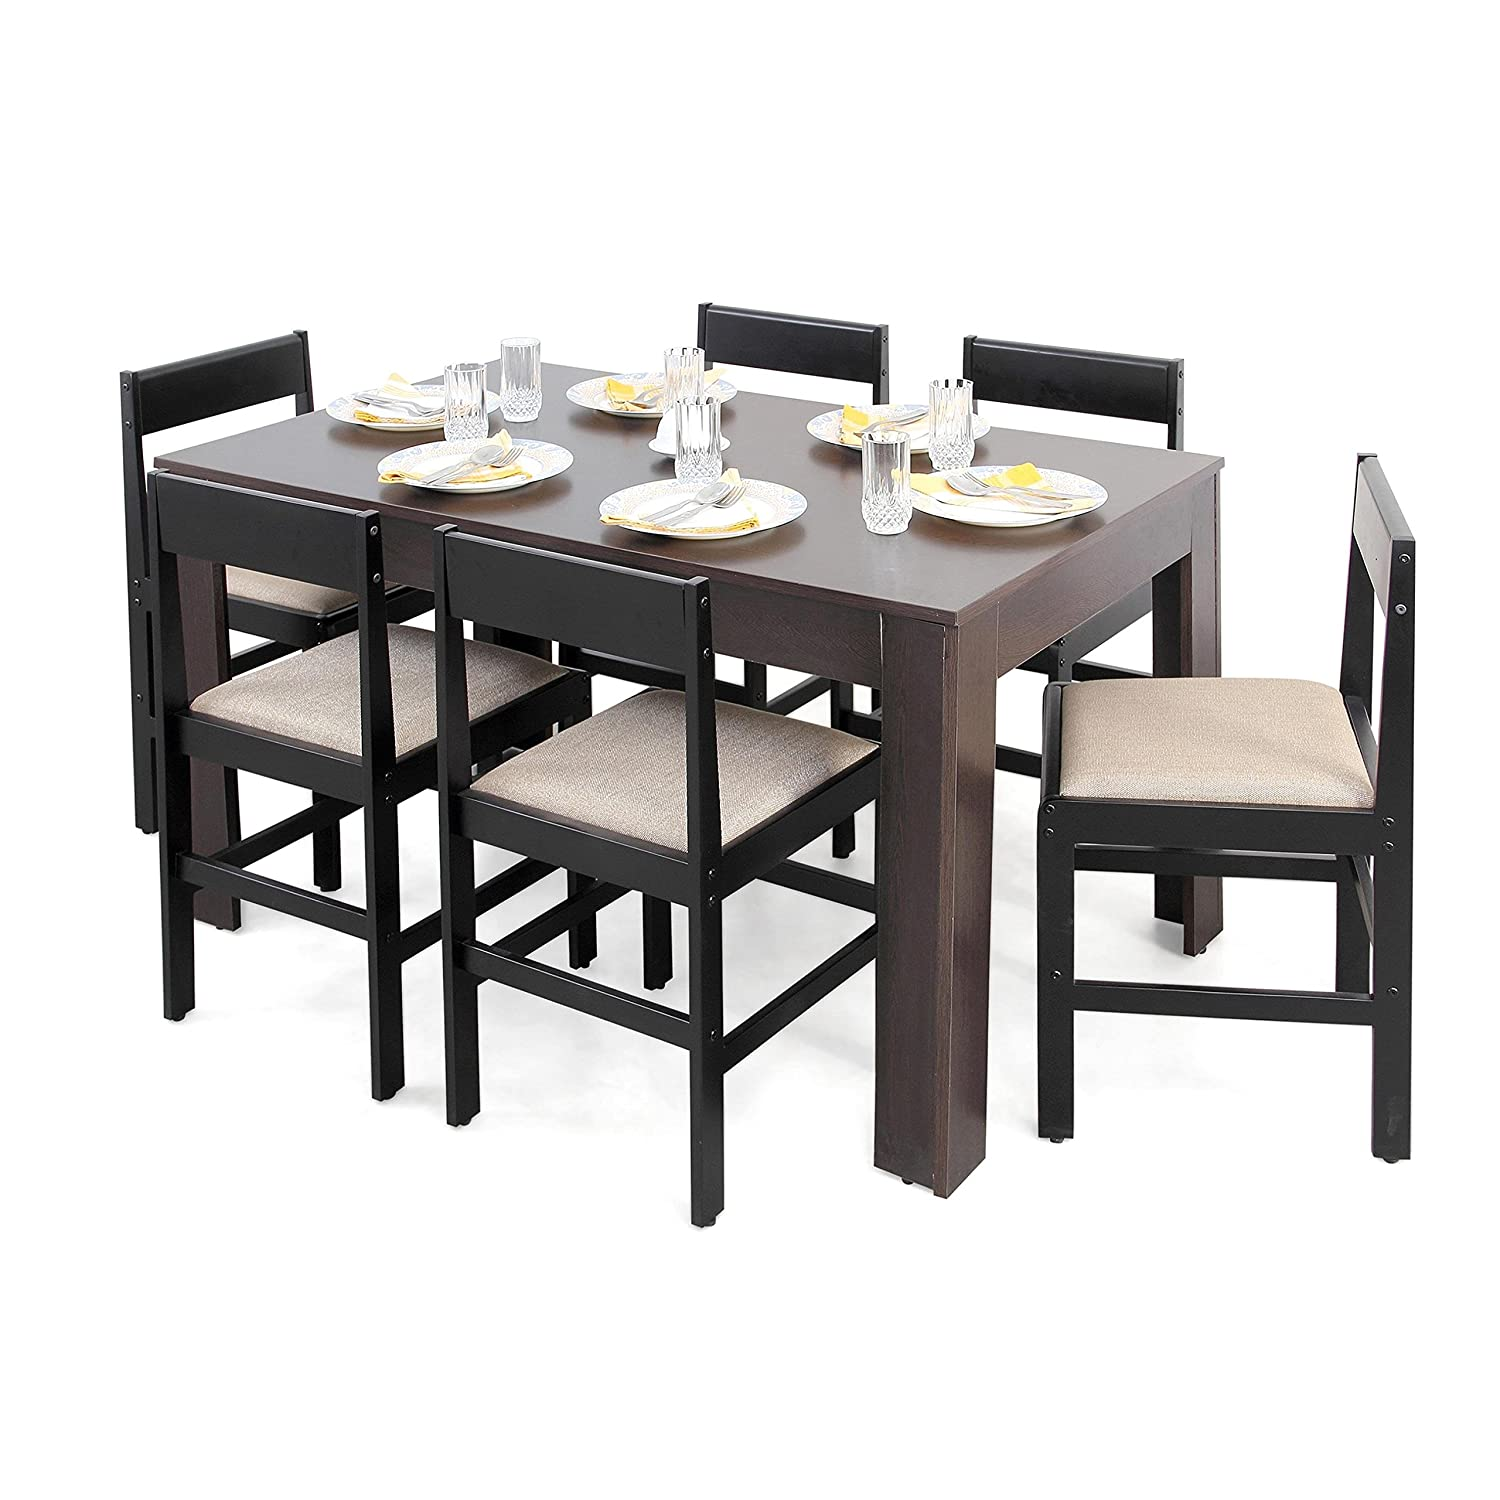 Dining table dimensions inches - Forzza Carter Six Seater Dining Table Set Matte Finish Wenge Amazon In Home Kitchen